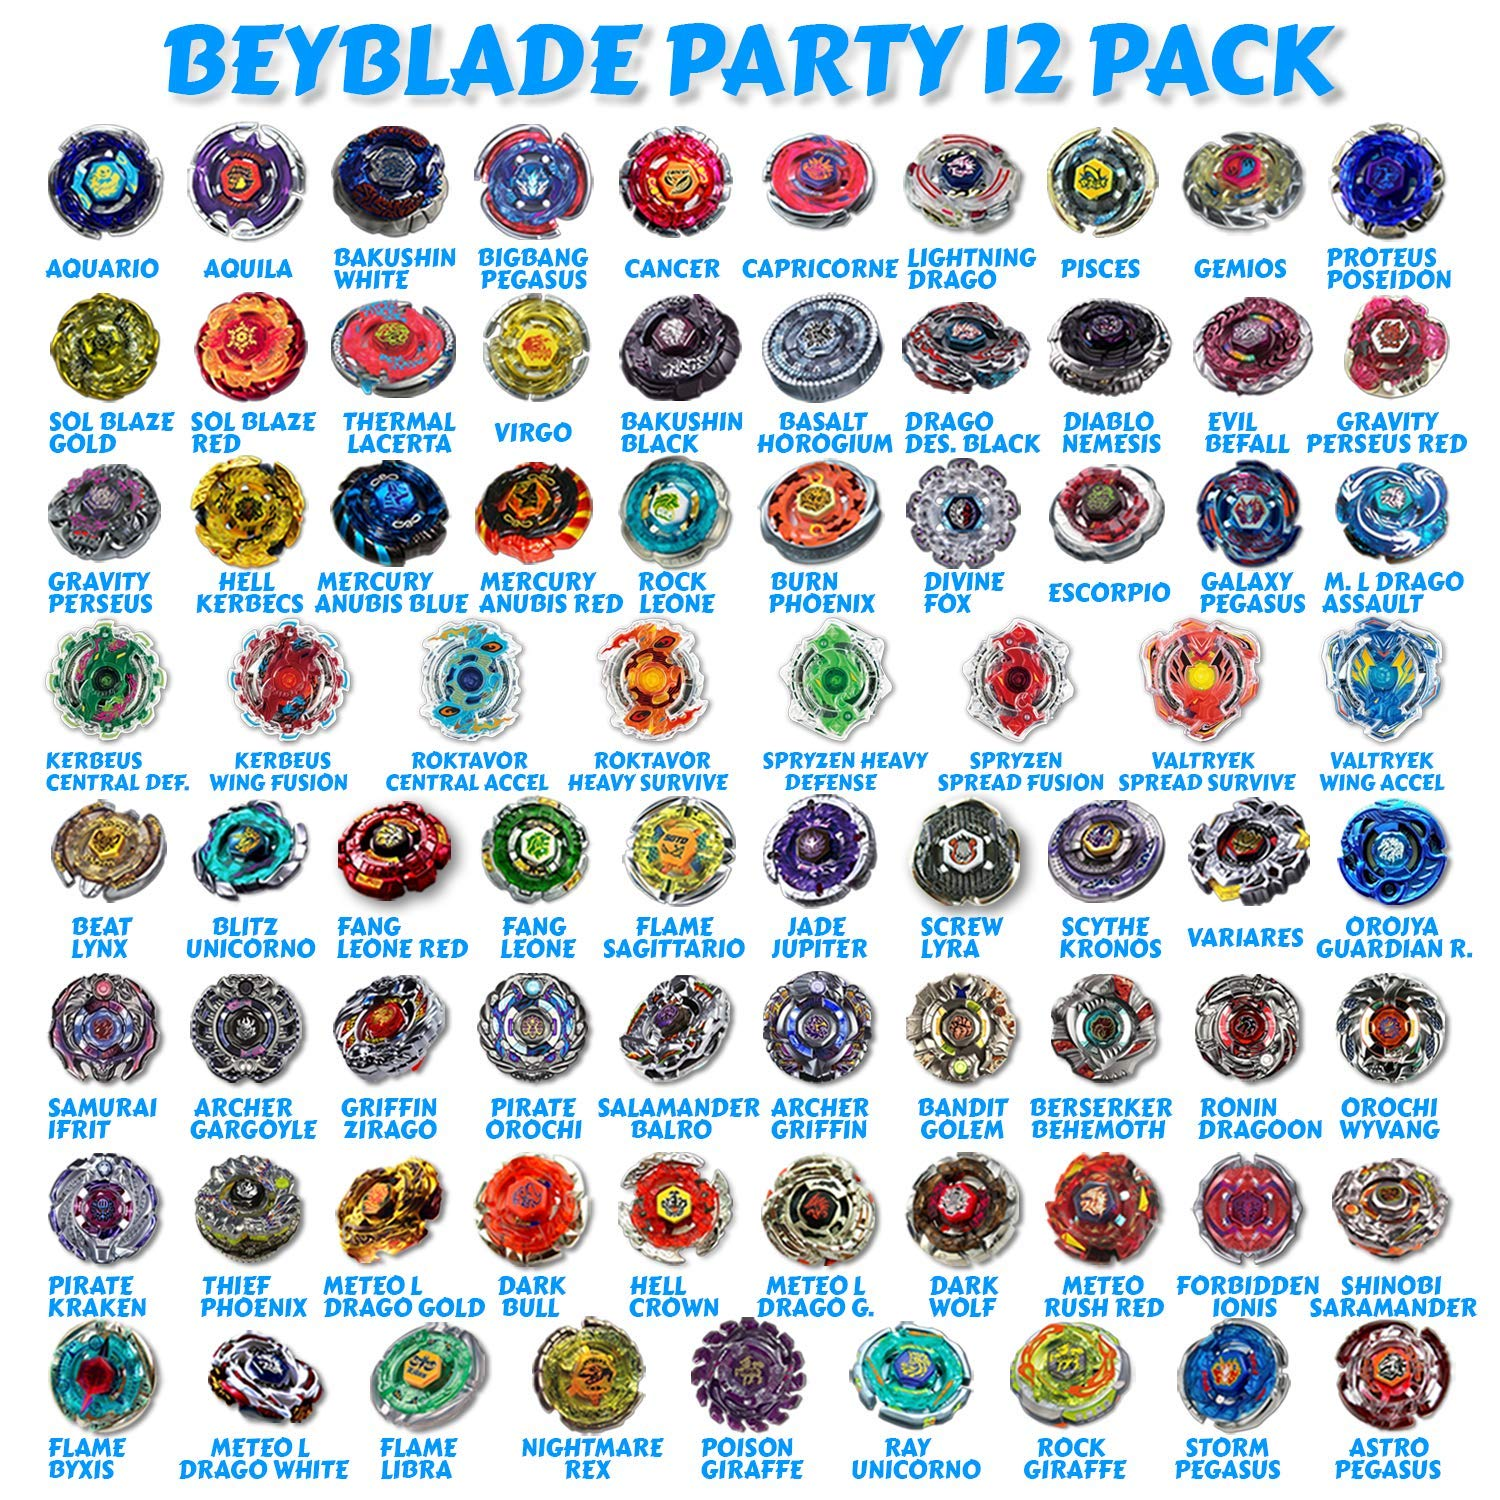 Beyblade Party 12 Random Beyblade Pack Metal Fusion, Metal Fury, Metal Master, Zero G Shogun Steel, Burst Series Shipped and Sold from The US